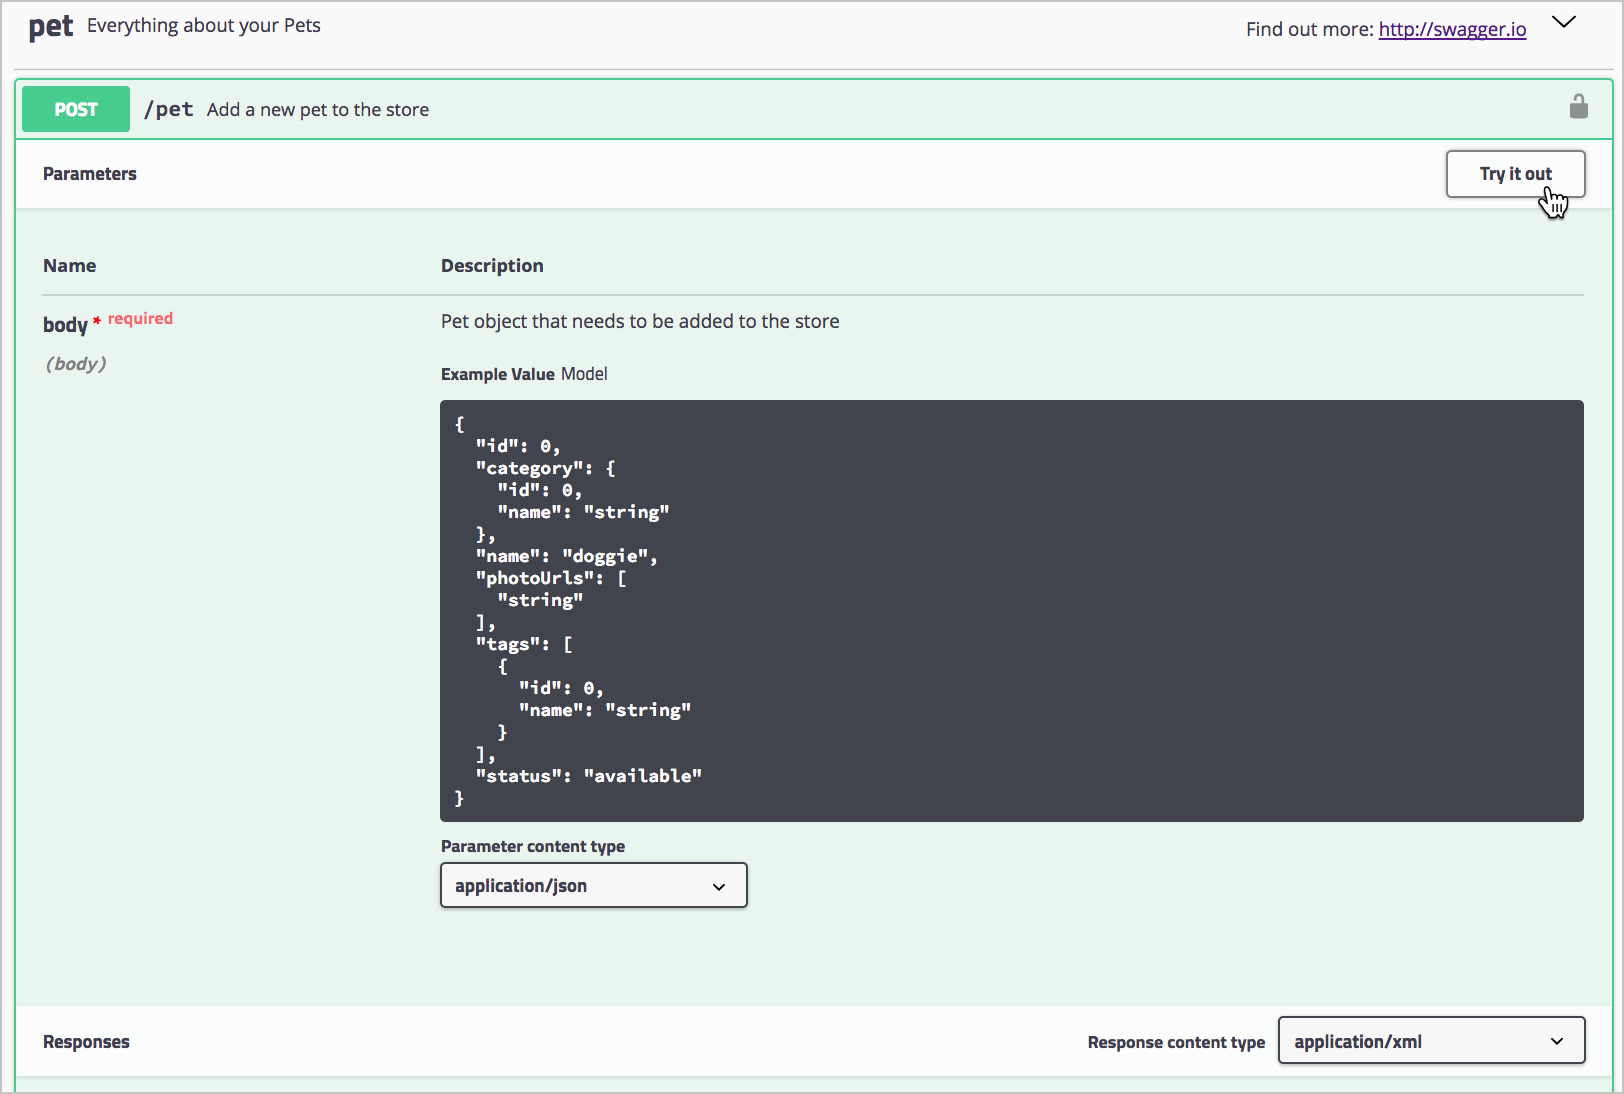 POST /pet endpoint and Try it out button in Swagger UI